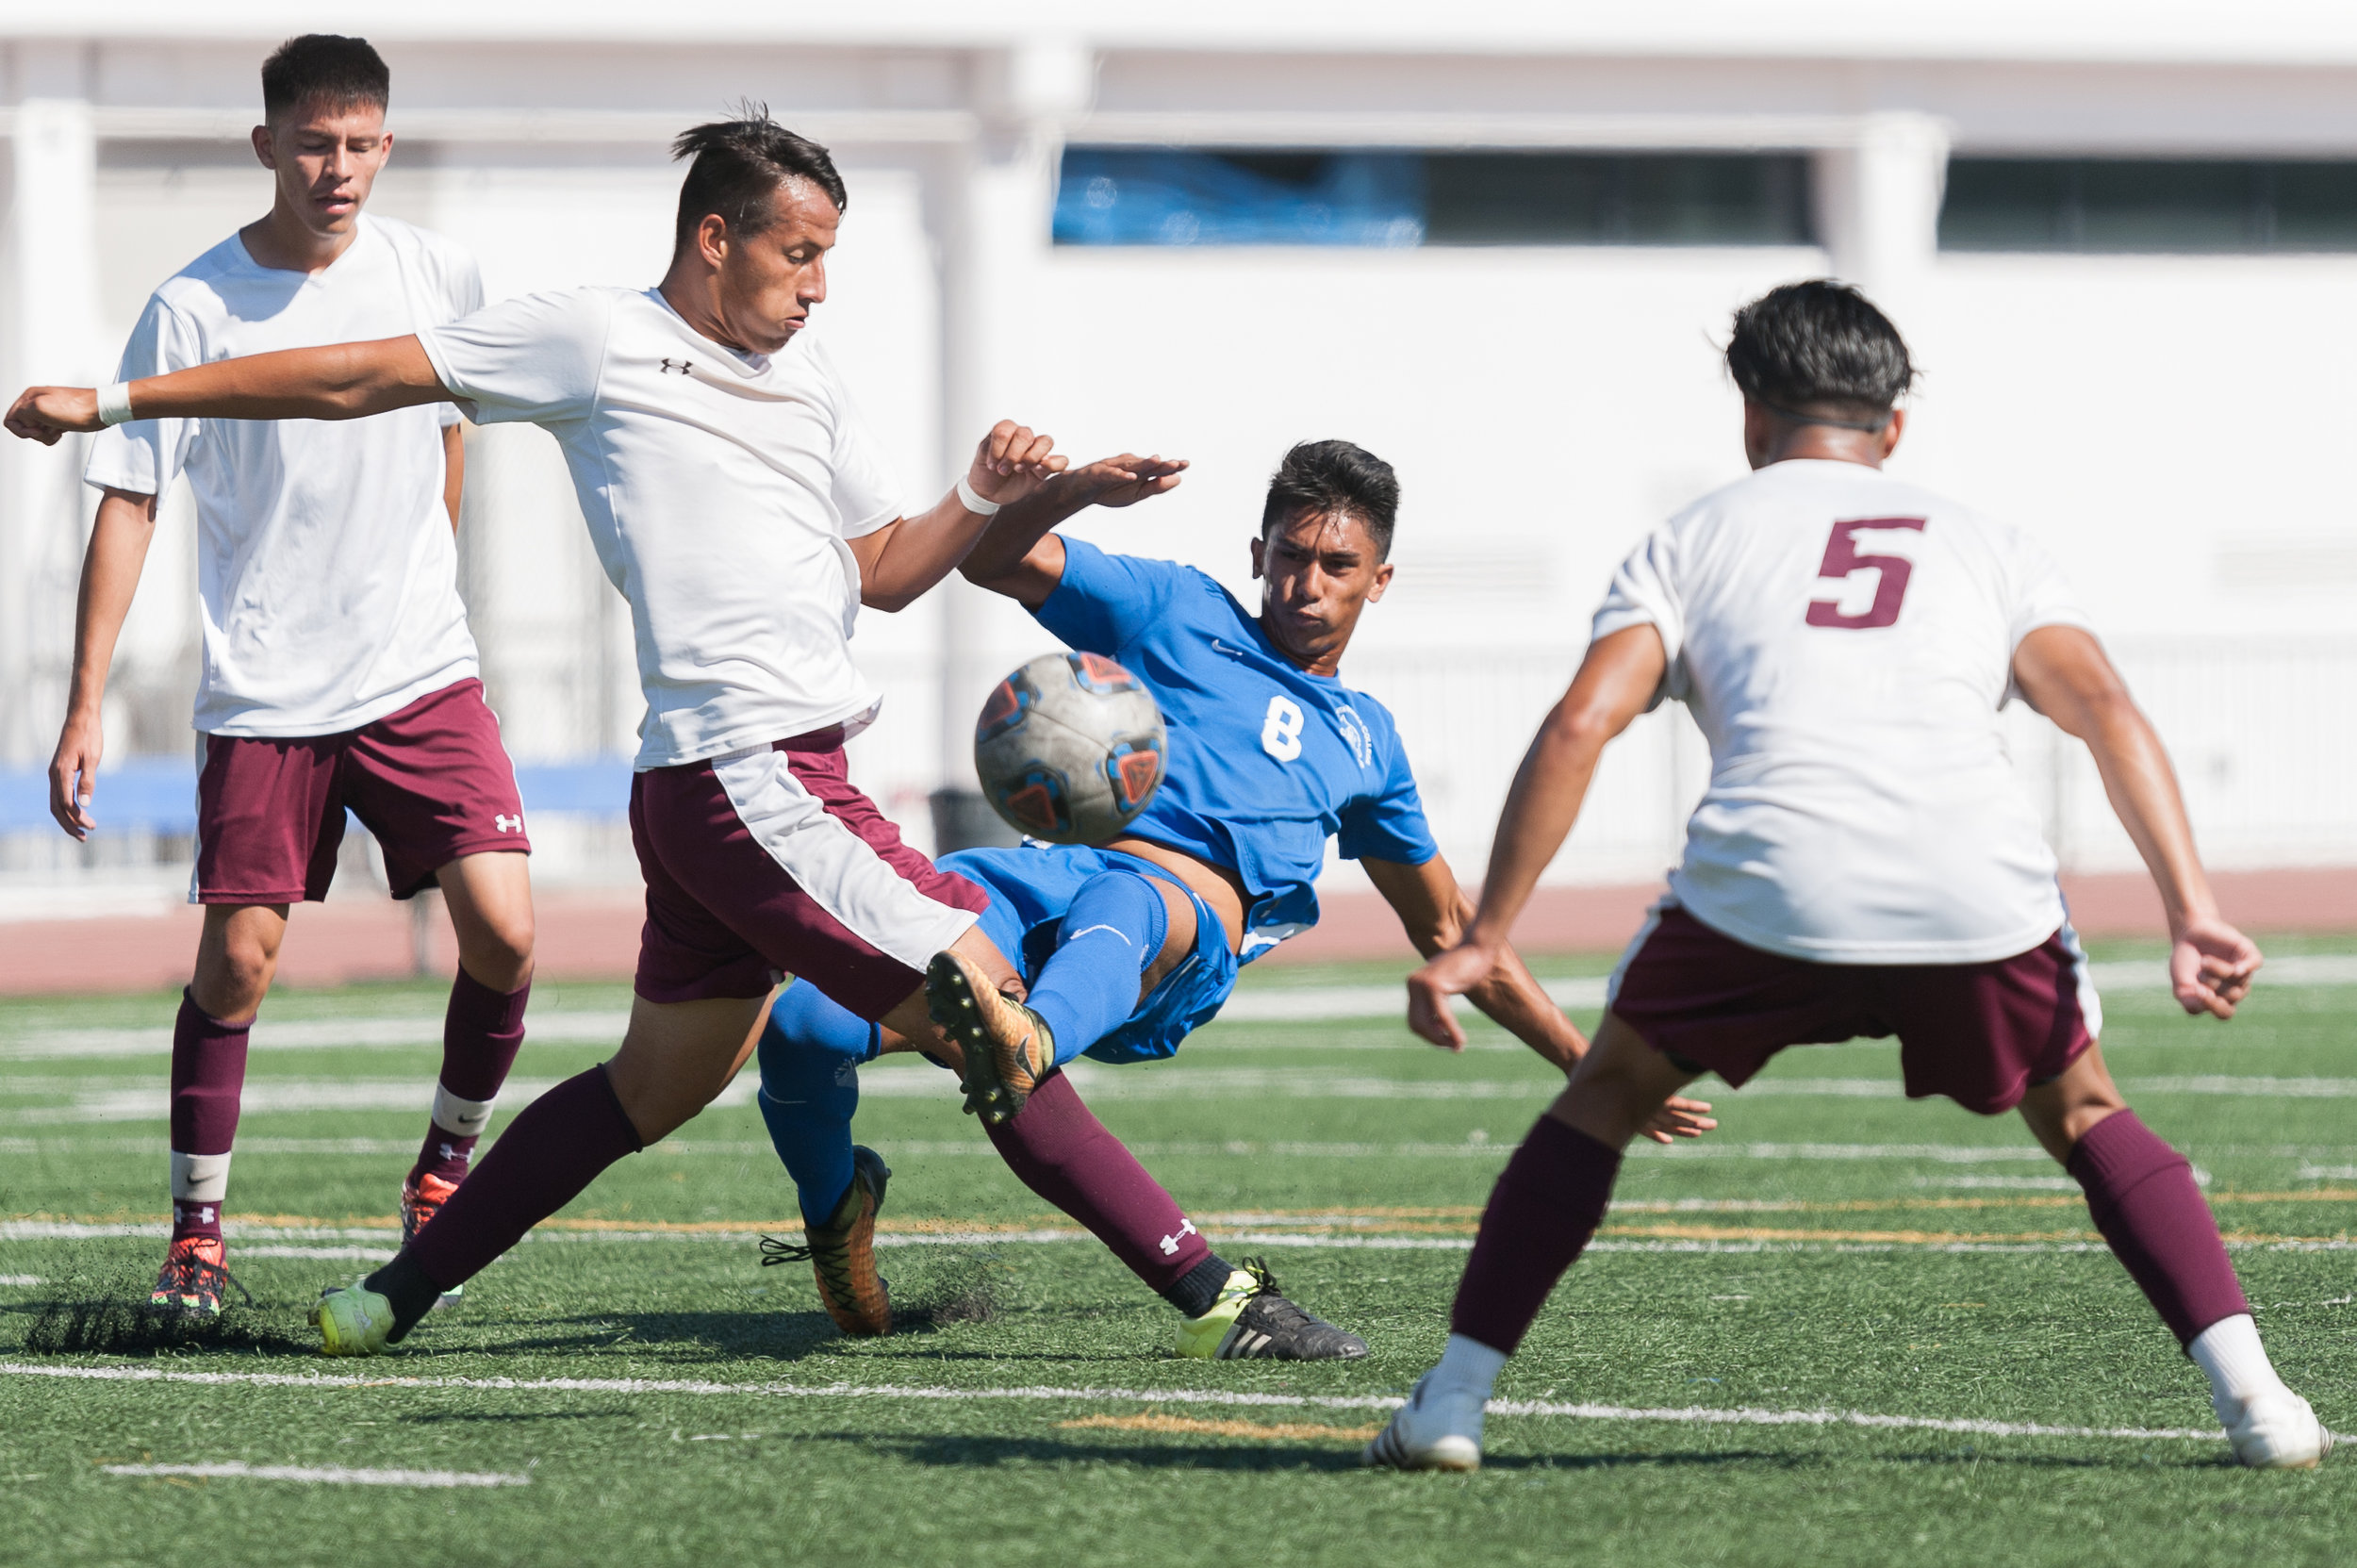 Forward Andy Naidu (8) of Santa Monica College makes a pass through several Victor Valley players. The Santa Monica College Corsairs won the game 2-0 against the Victor Valley Rams. The match was held at the Corsair Stadium at Santa Monica College in Santa Monica, Calif. on October 6, 2017. (Photo by: Justin Han/Corsair Staff)